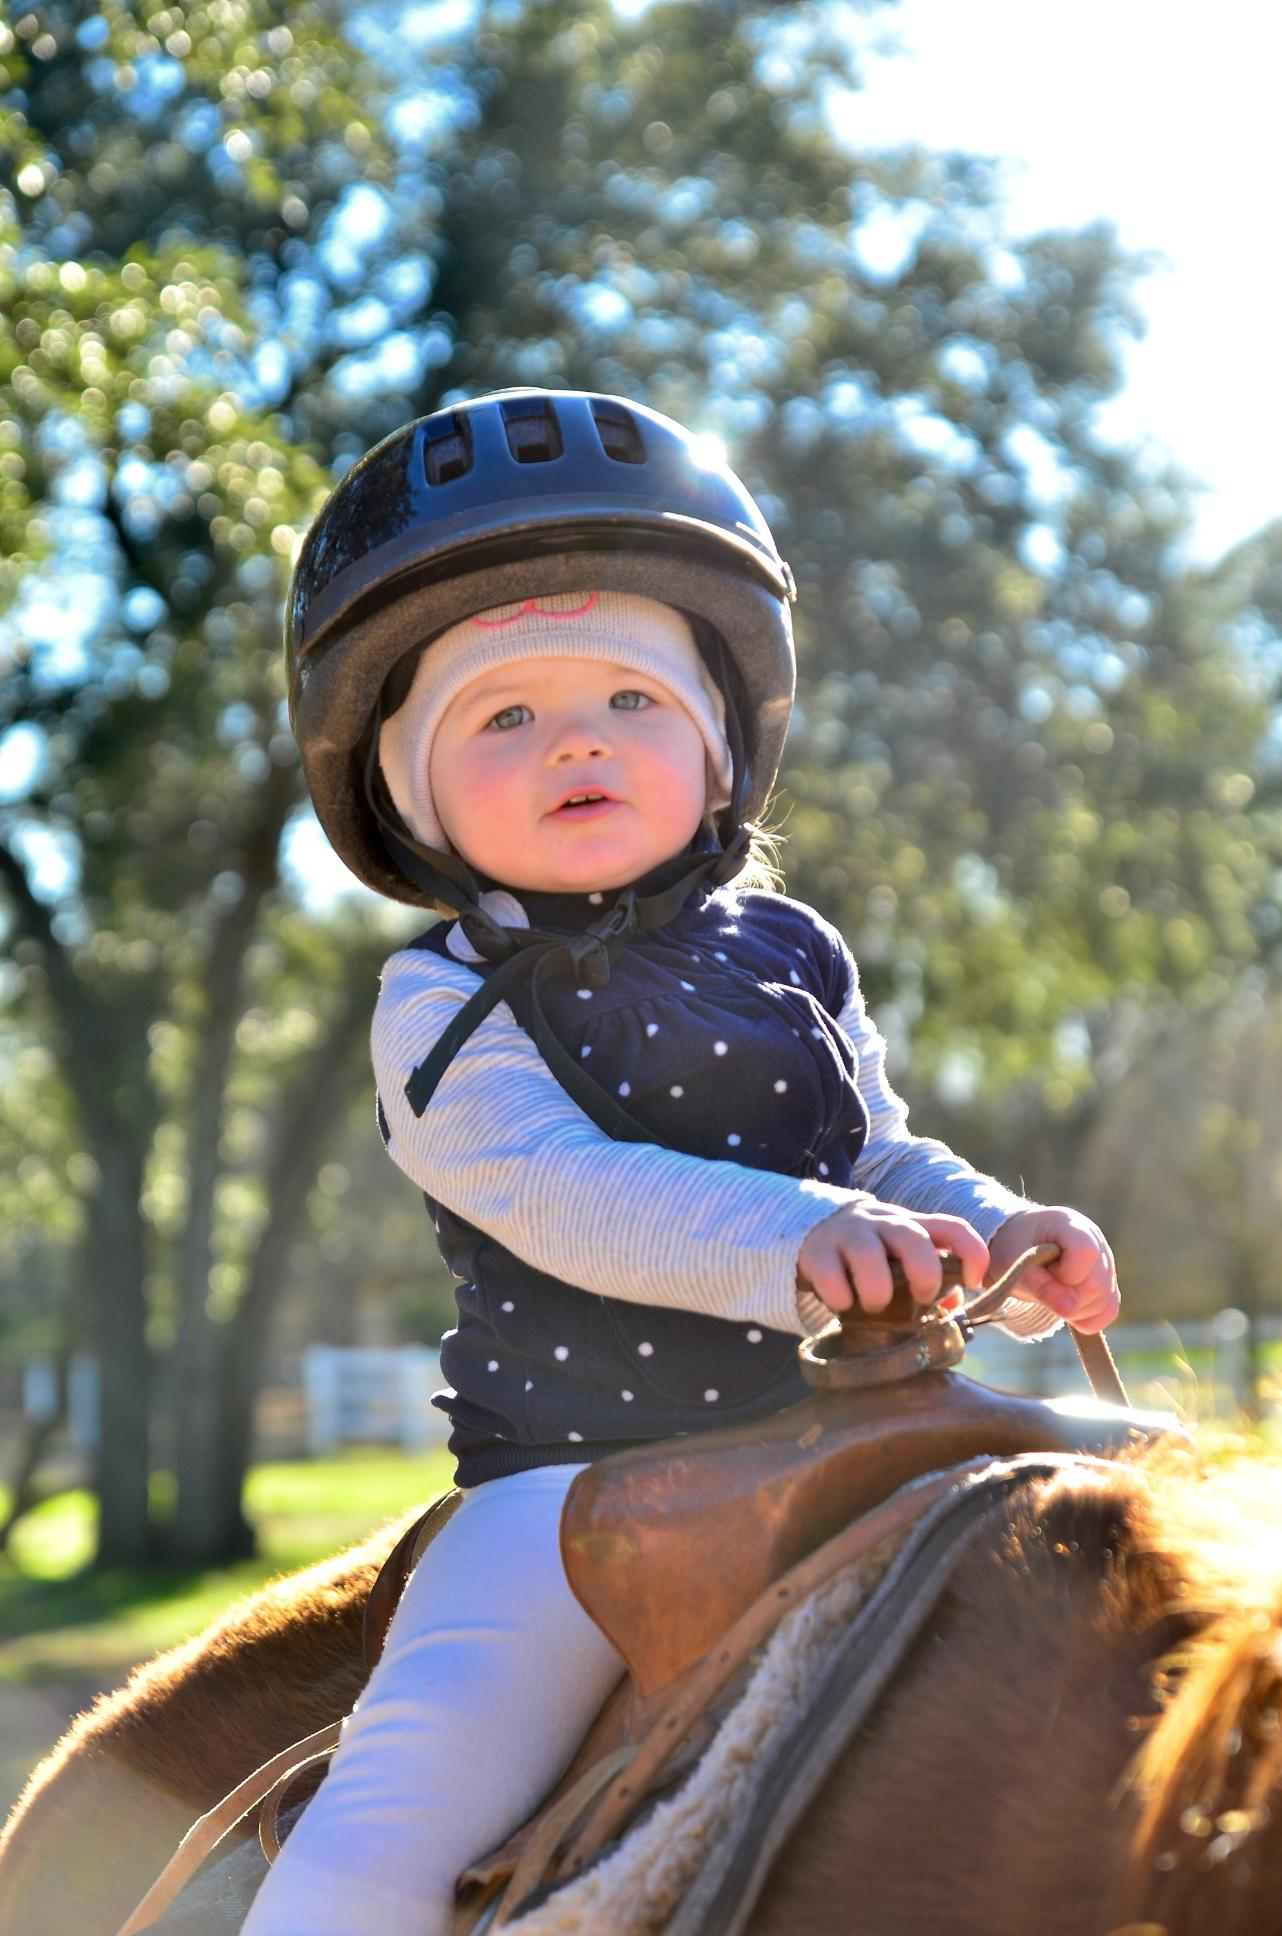 Pam's grandbaby and Pat's GREAT grandbaby Berlyn riding at Christmas just had to show off!!!